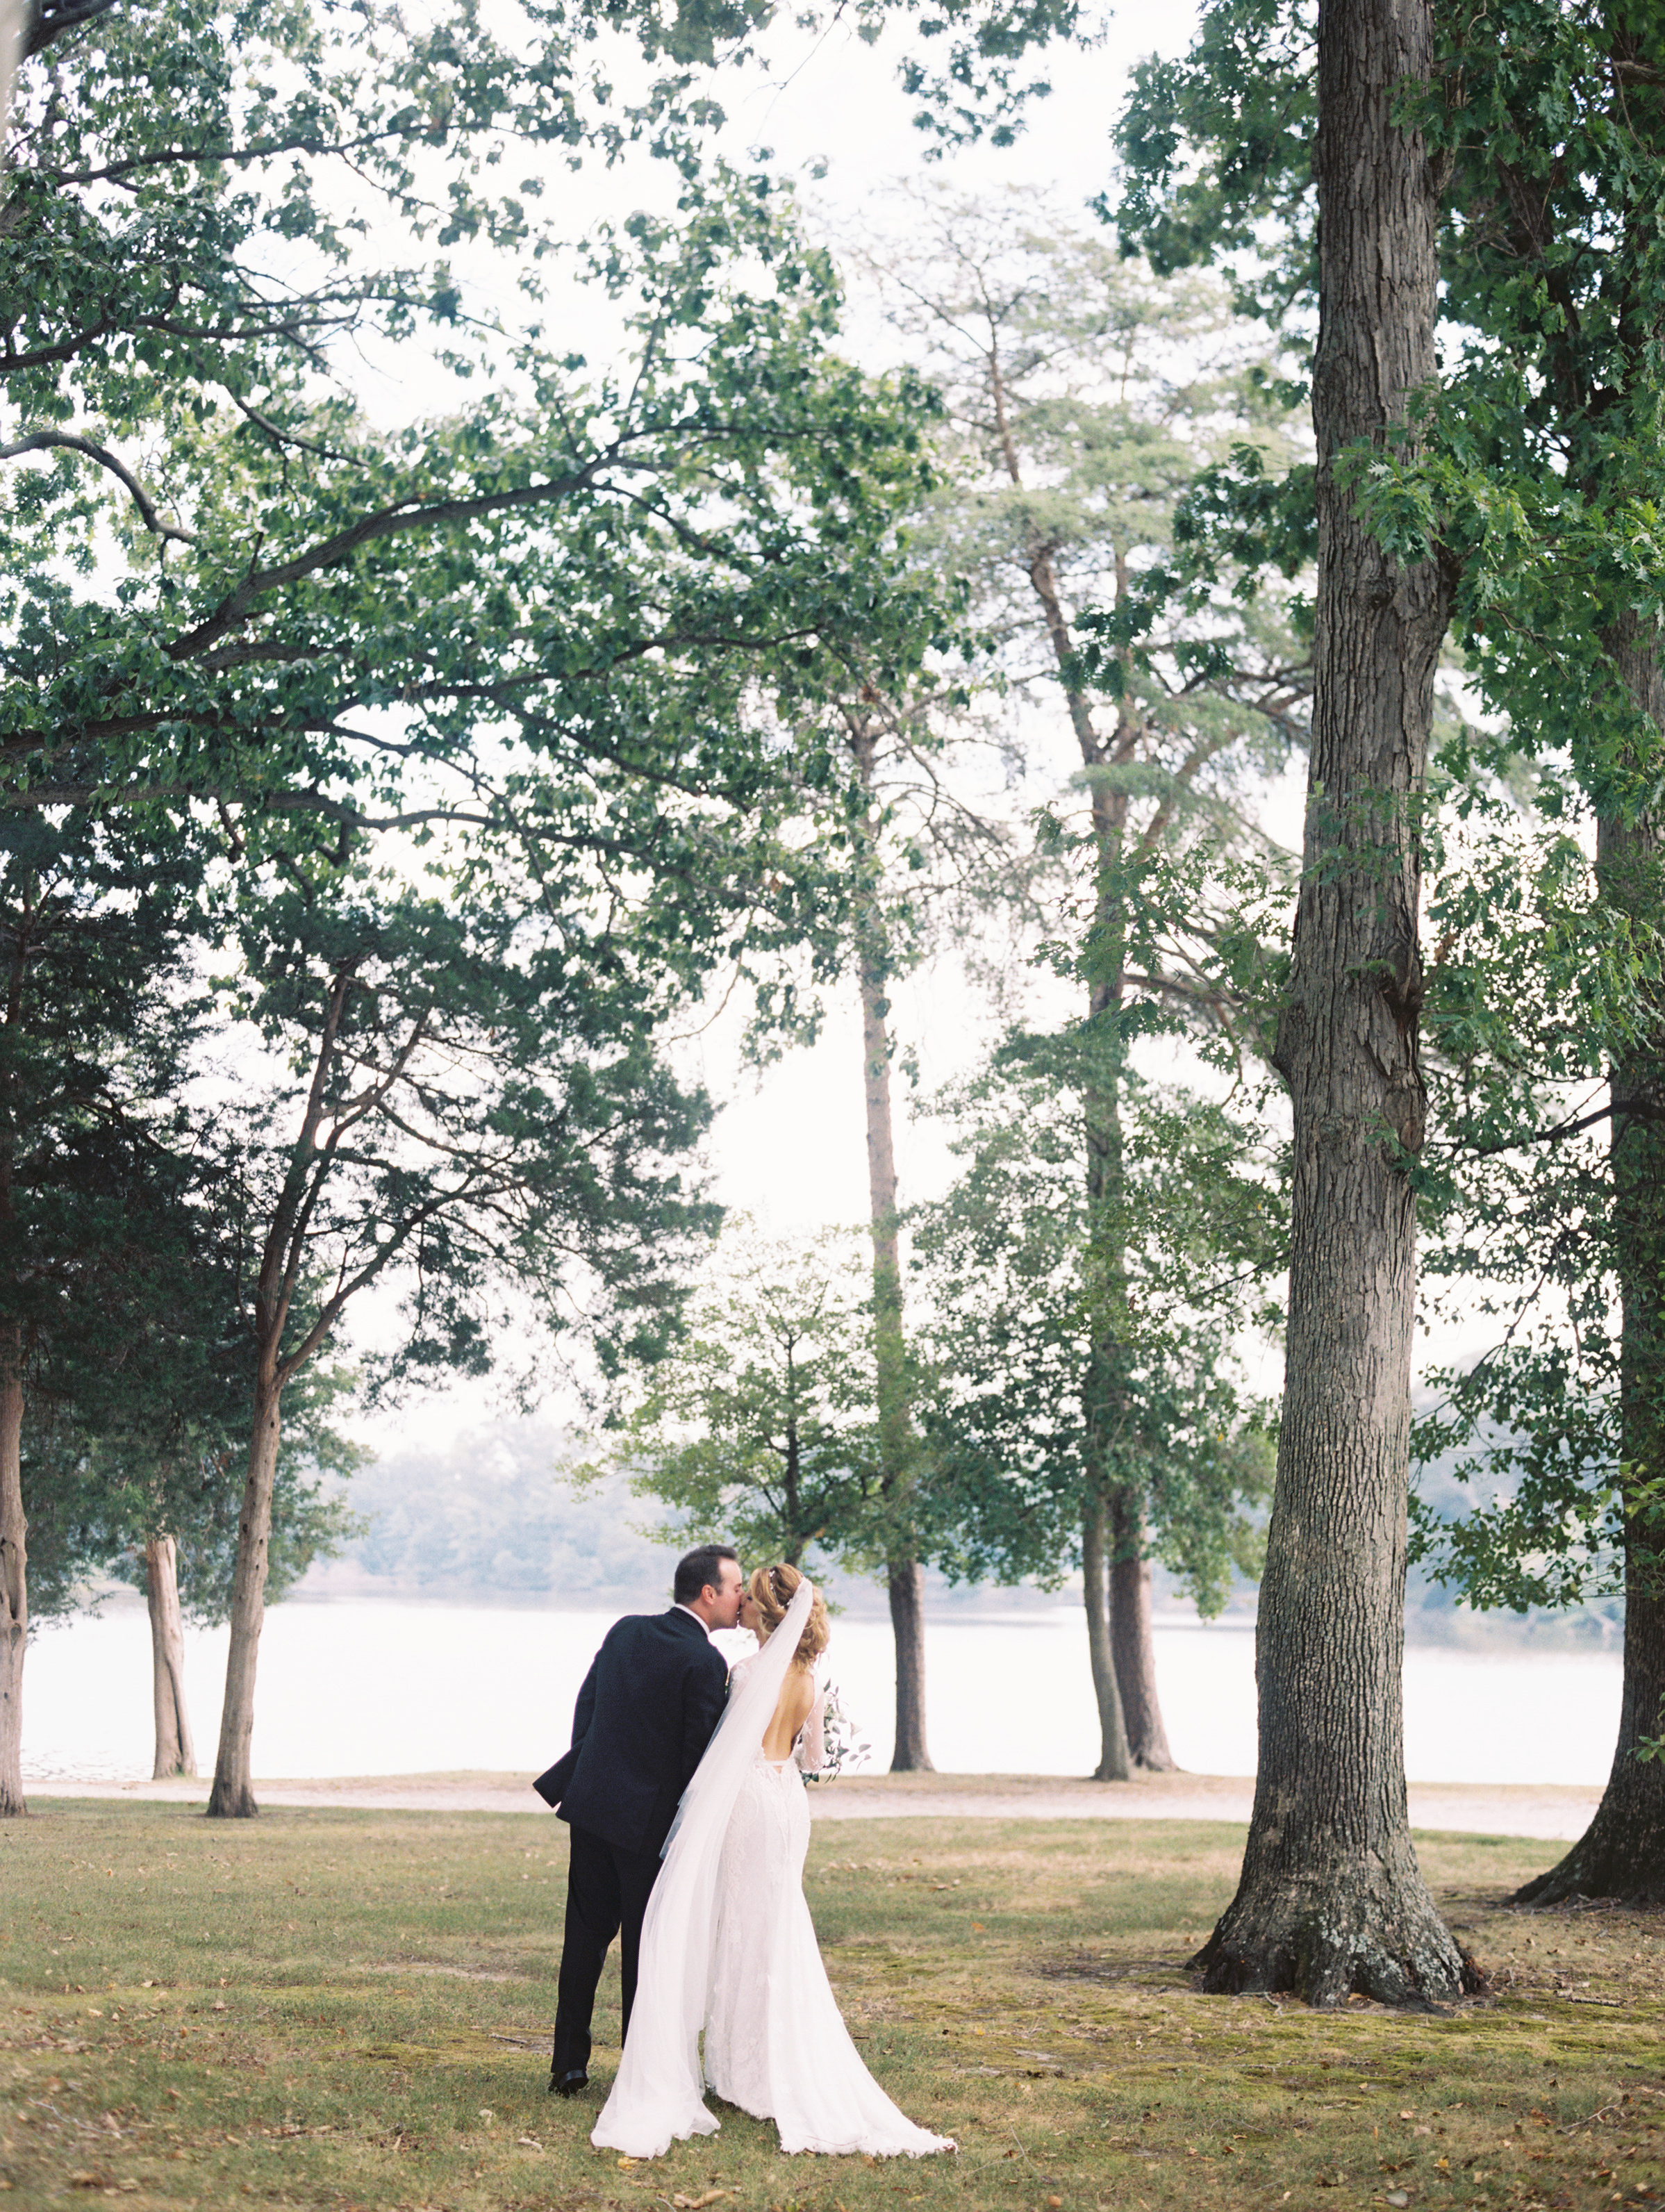 Photography: Lisa Ziesing with Abby Jiu Photography | Planning & Styling: Lauryn Prattes Styling and Events | Handmade Paper & Calligraphy: Spurlé Gul Studio | Gown: Berta Bridal